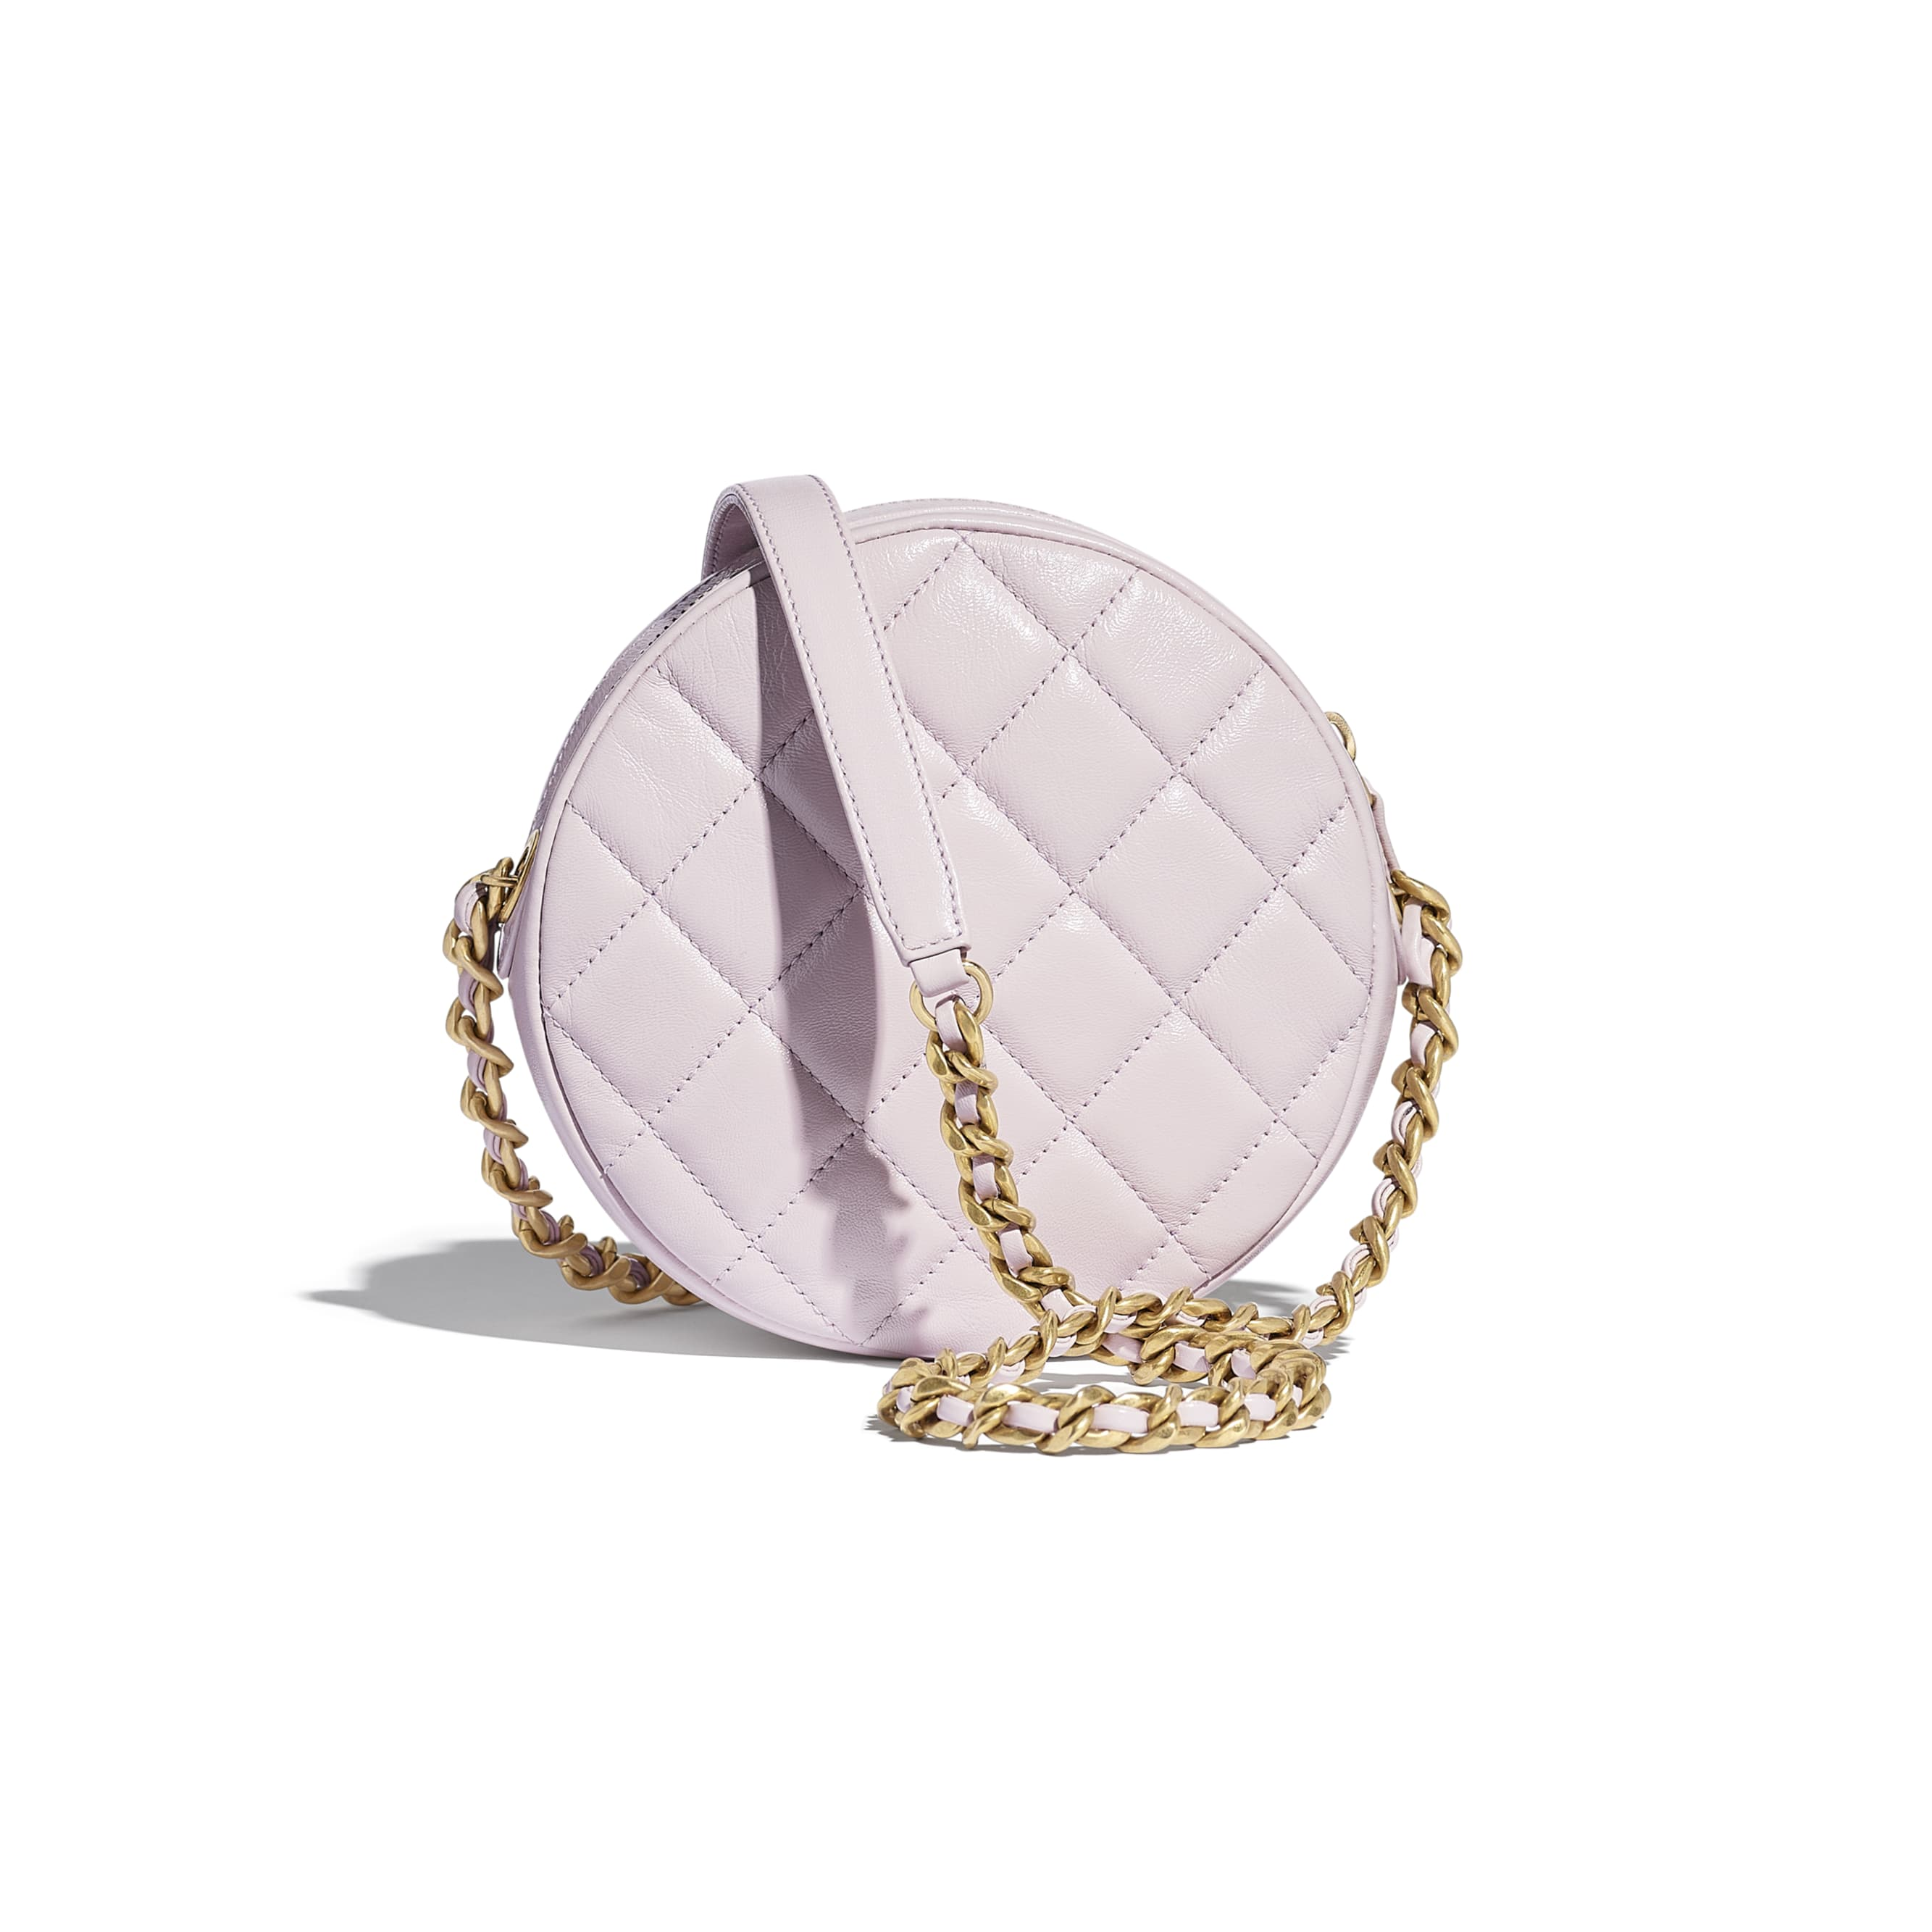 Small Round Bag - Lilac - Shiny Lambskin & Gold-Tone Metal - CHANEL - Alternative view - see standard sized version